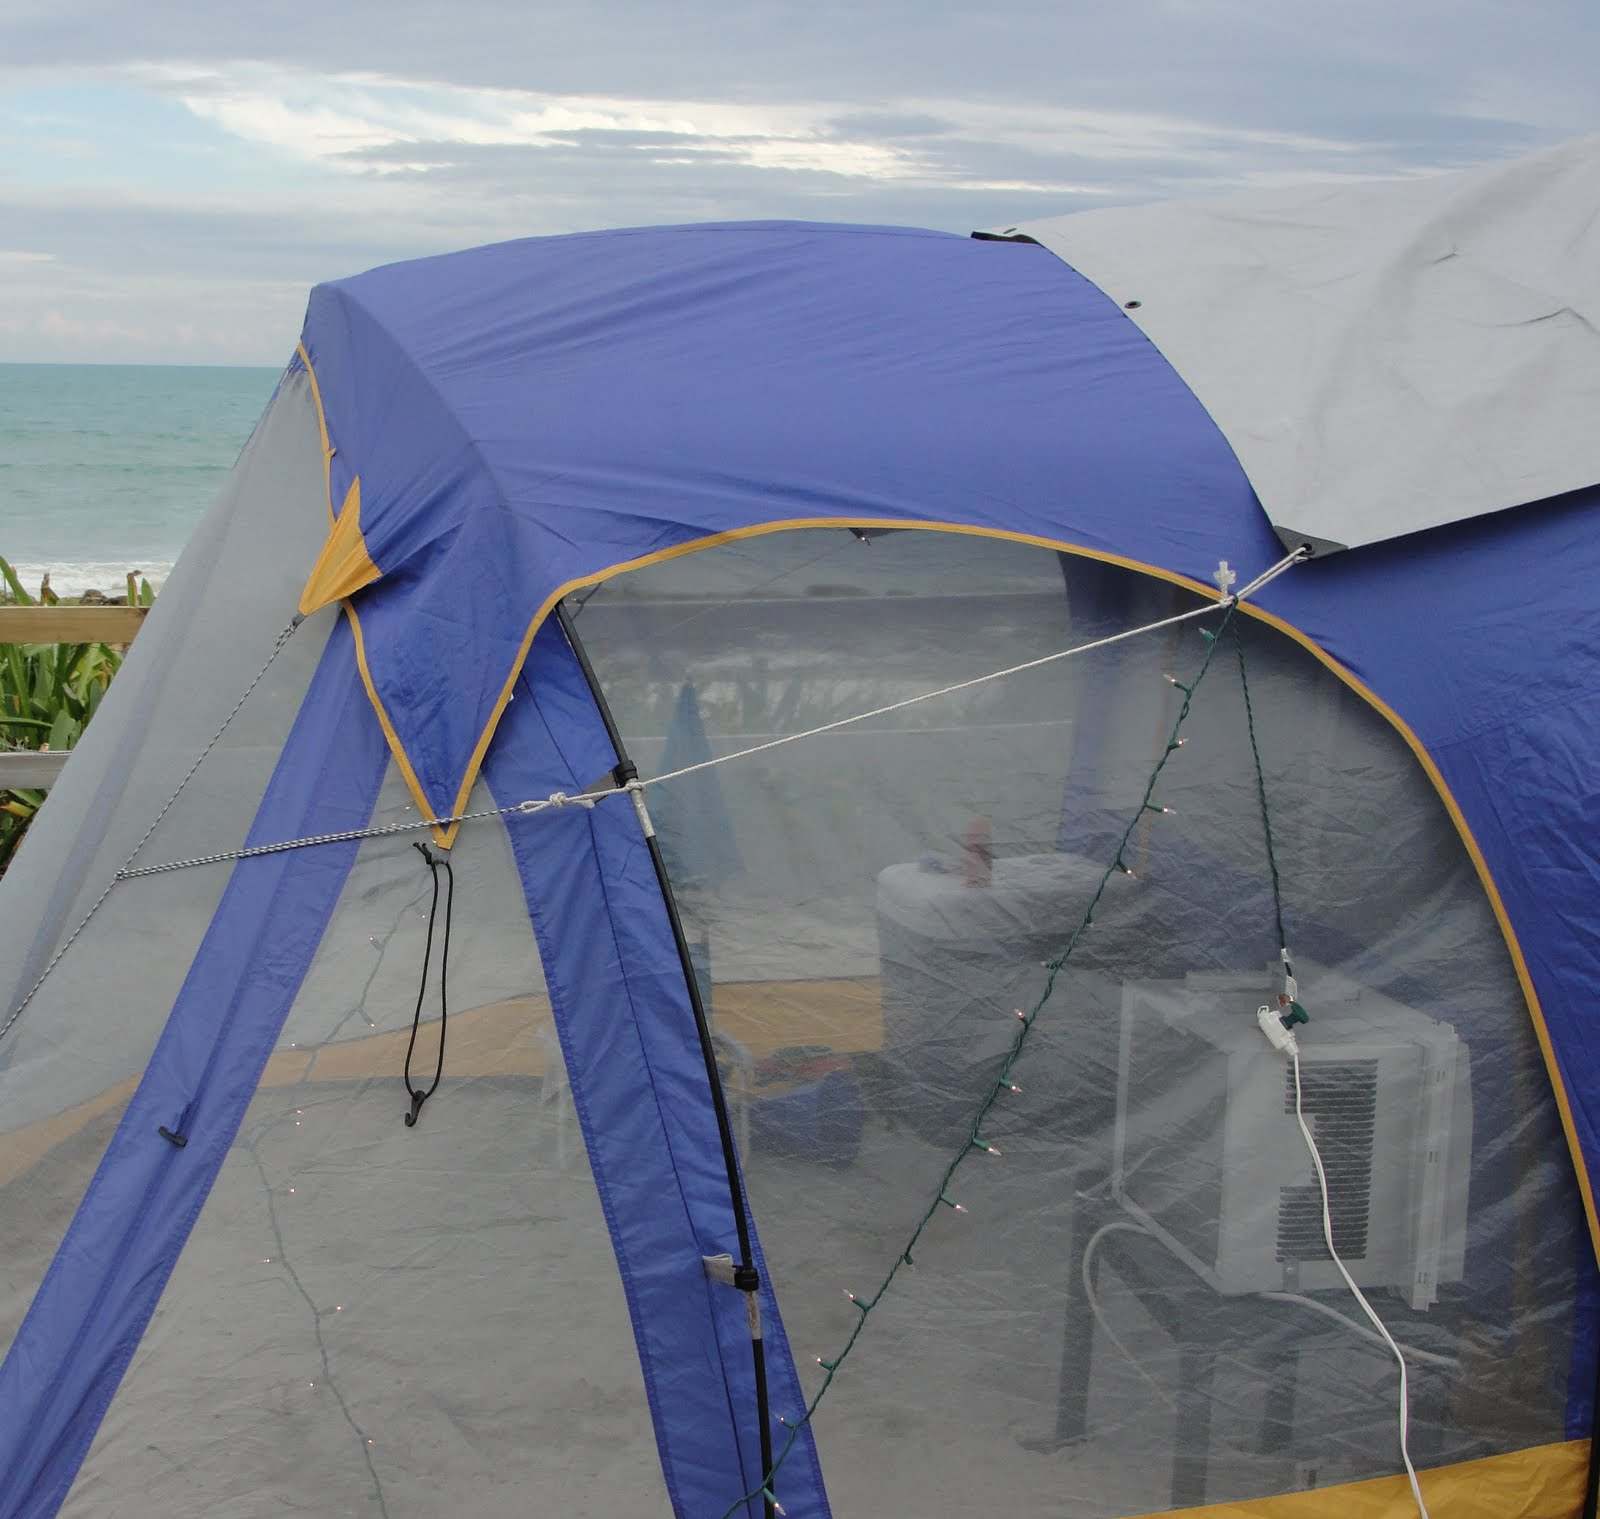 Camping Tent AC http://www.pic2fly.com/Air Conditioning for Camping #947238